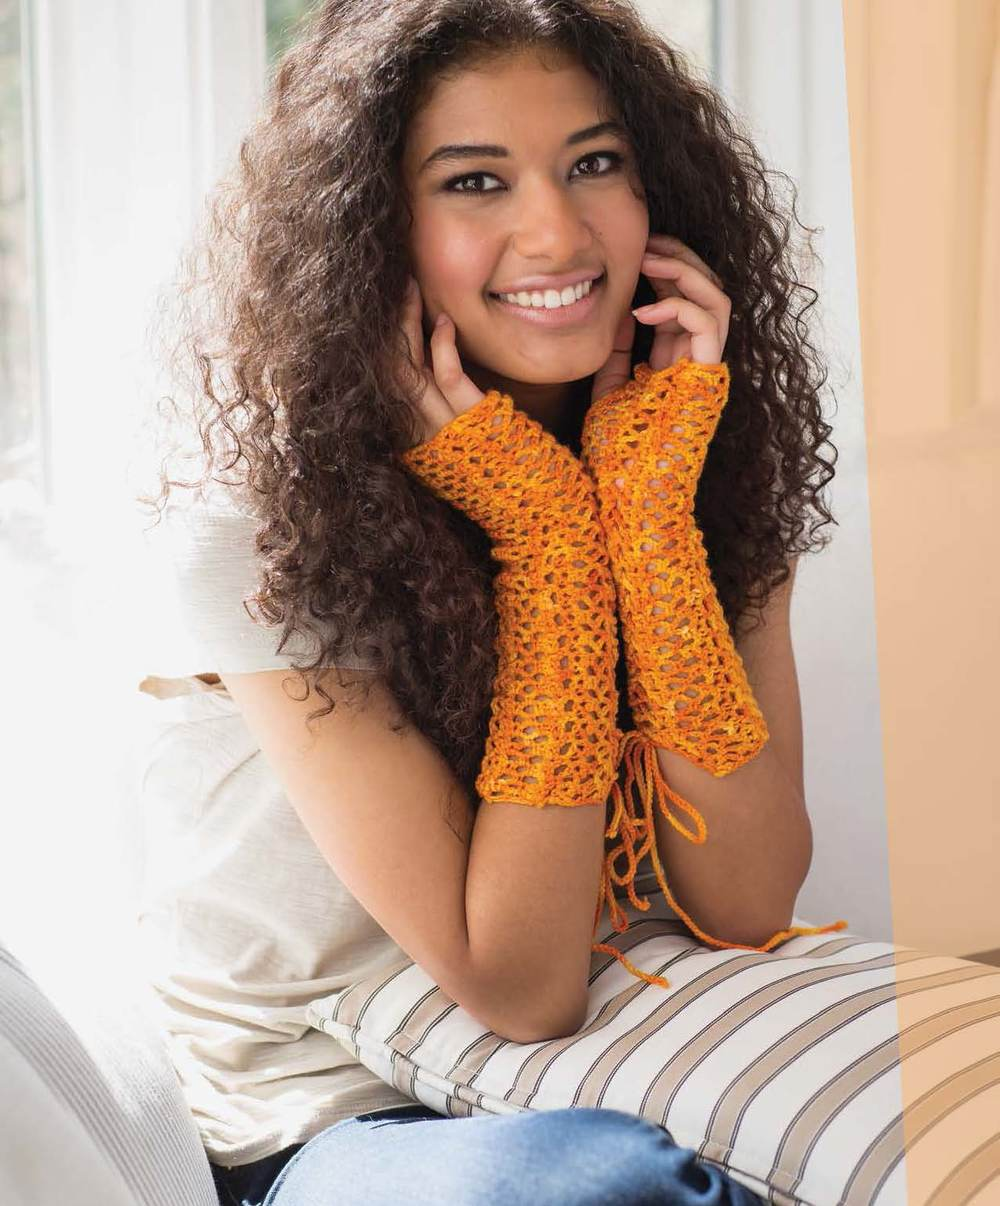 Crochet So Lovely -  Corset-Laced Gauntlets beauty shot.jpg